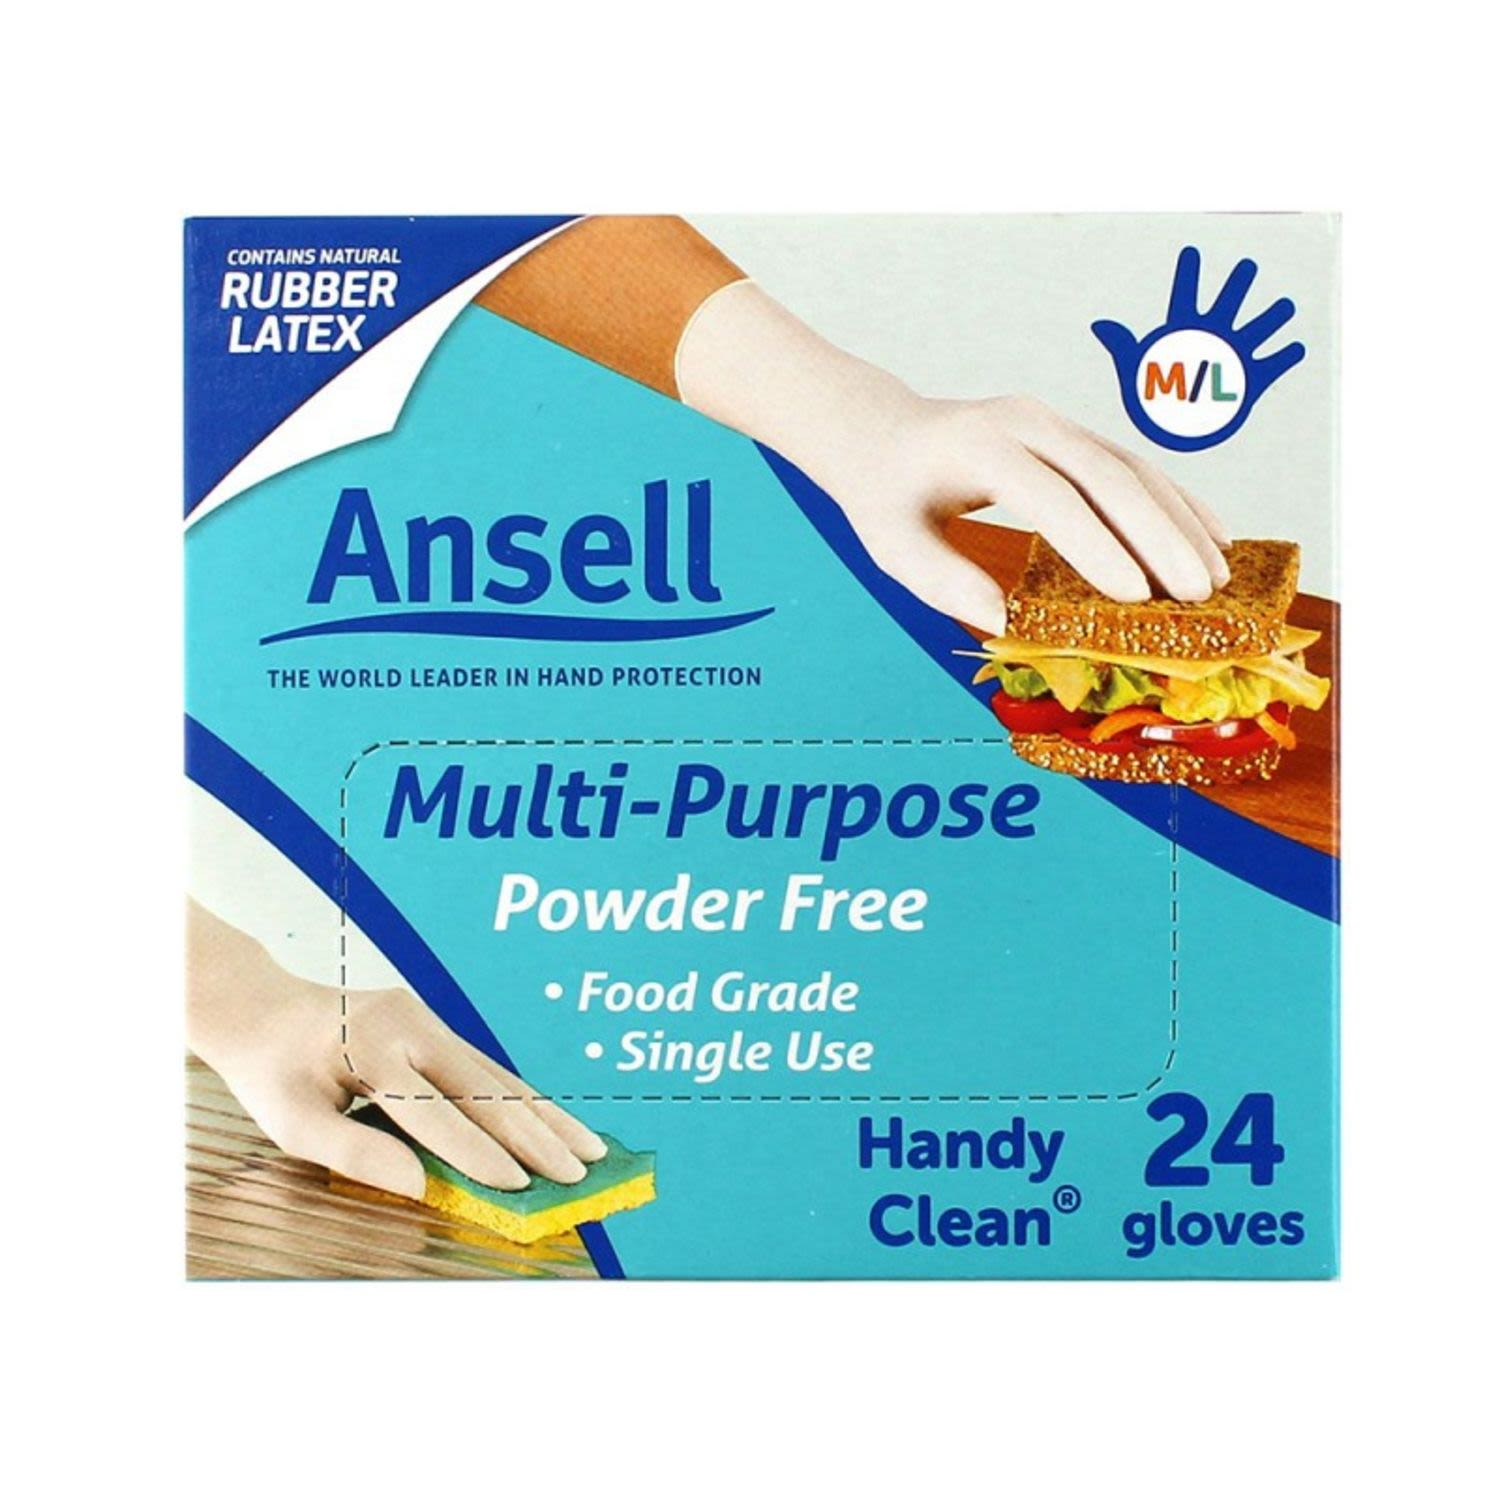 he soft and flexible natural rubber latex provides excellent comfort and flt with a sensitive touch. Ansell Handy Clean gloves fit either hand. - Ideal for household cleaning & food preparation - Powder free - Contains rubber latex for flexi comfort - Multipurpose use - Food grade - One size fit all / fit either hand - Available in packs of 24 & 100 CAUTION: This product contains natural rubber latex which may cause allergic reactions in some people. For those who are concerned about sensitivity or allergies to natural rubber latex or intend to handle chemicals, Ansell Heavy Duty or Ansell Multi-Sensitive single use gloves may be a suitable alternative. NOT FOR MEDICAL USE